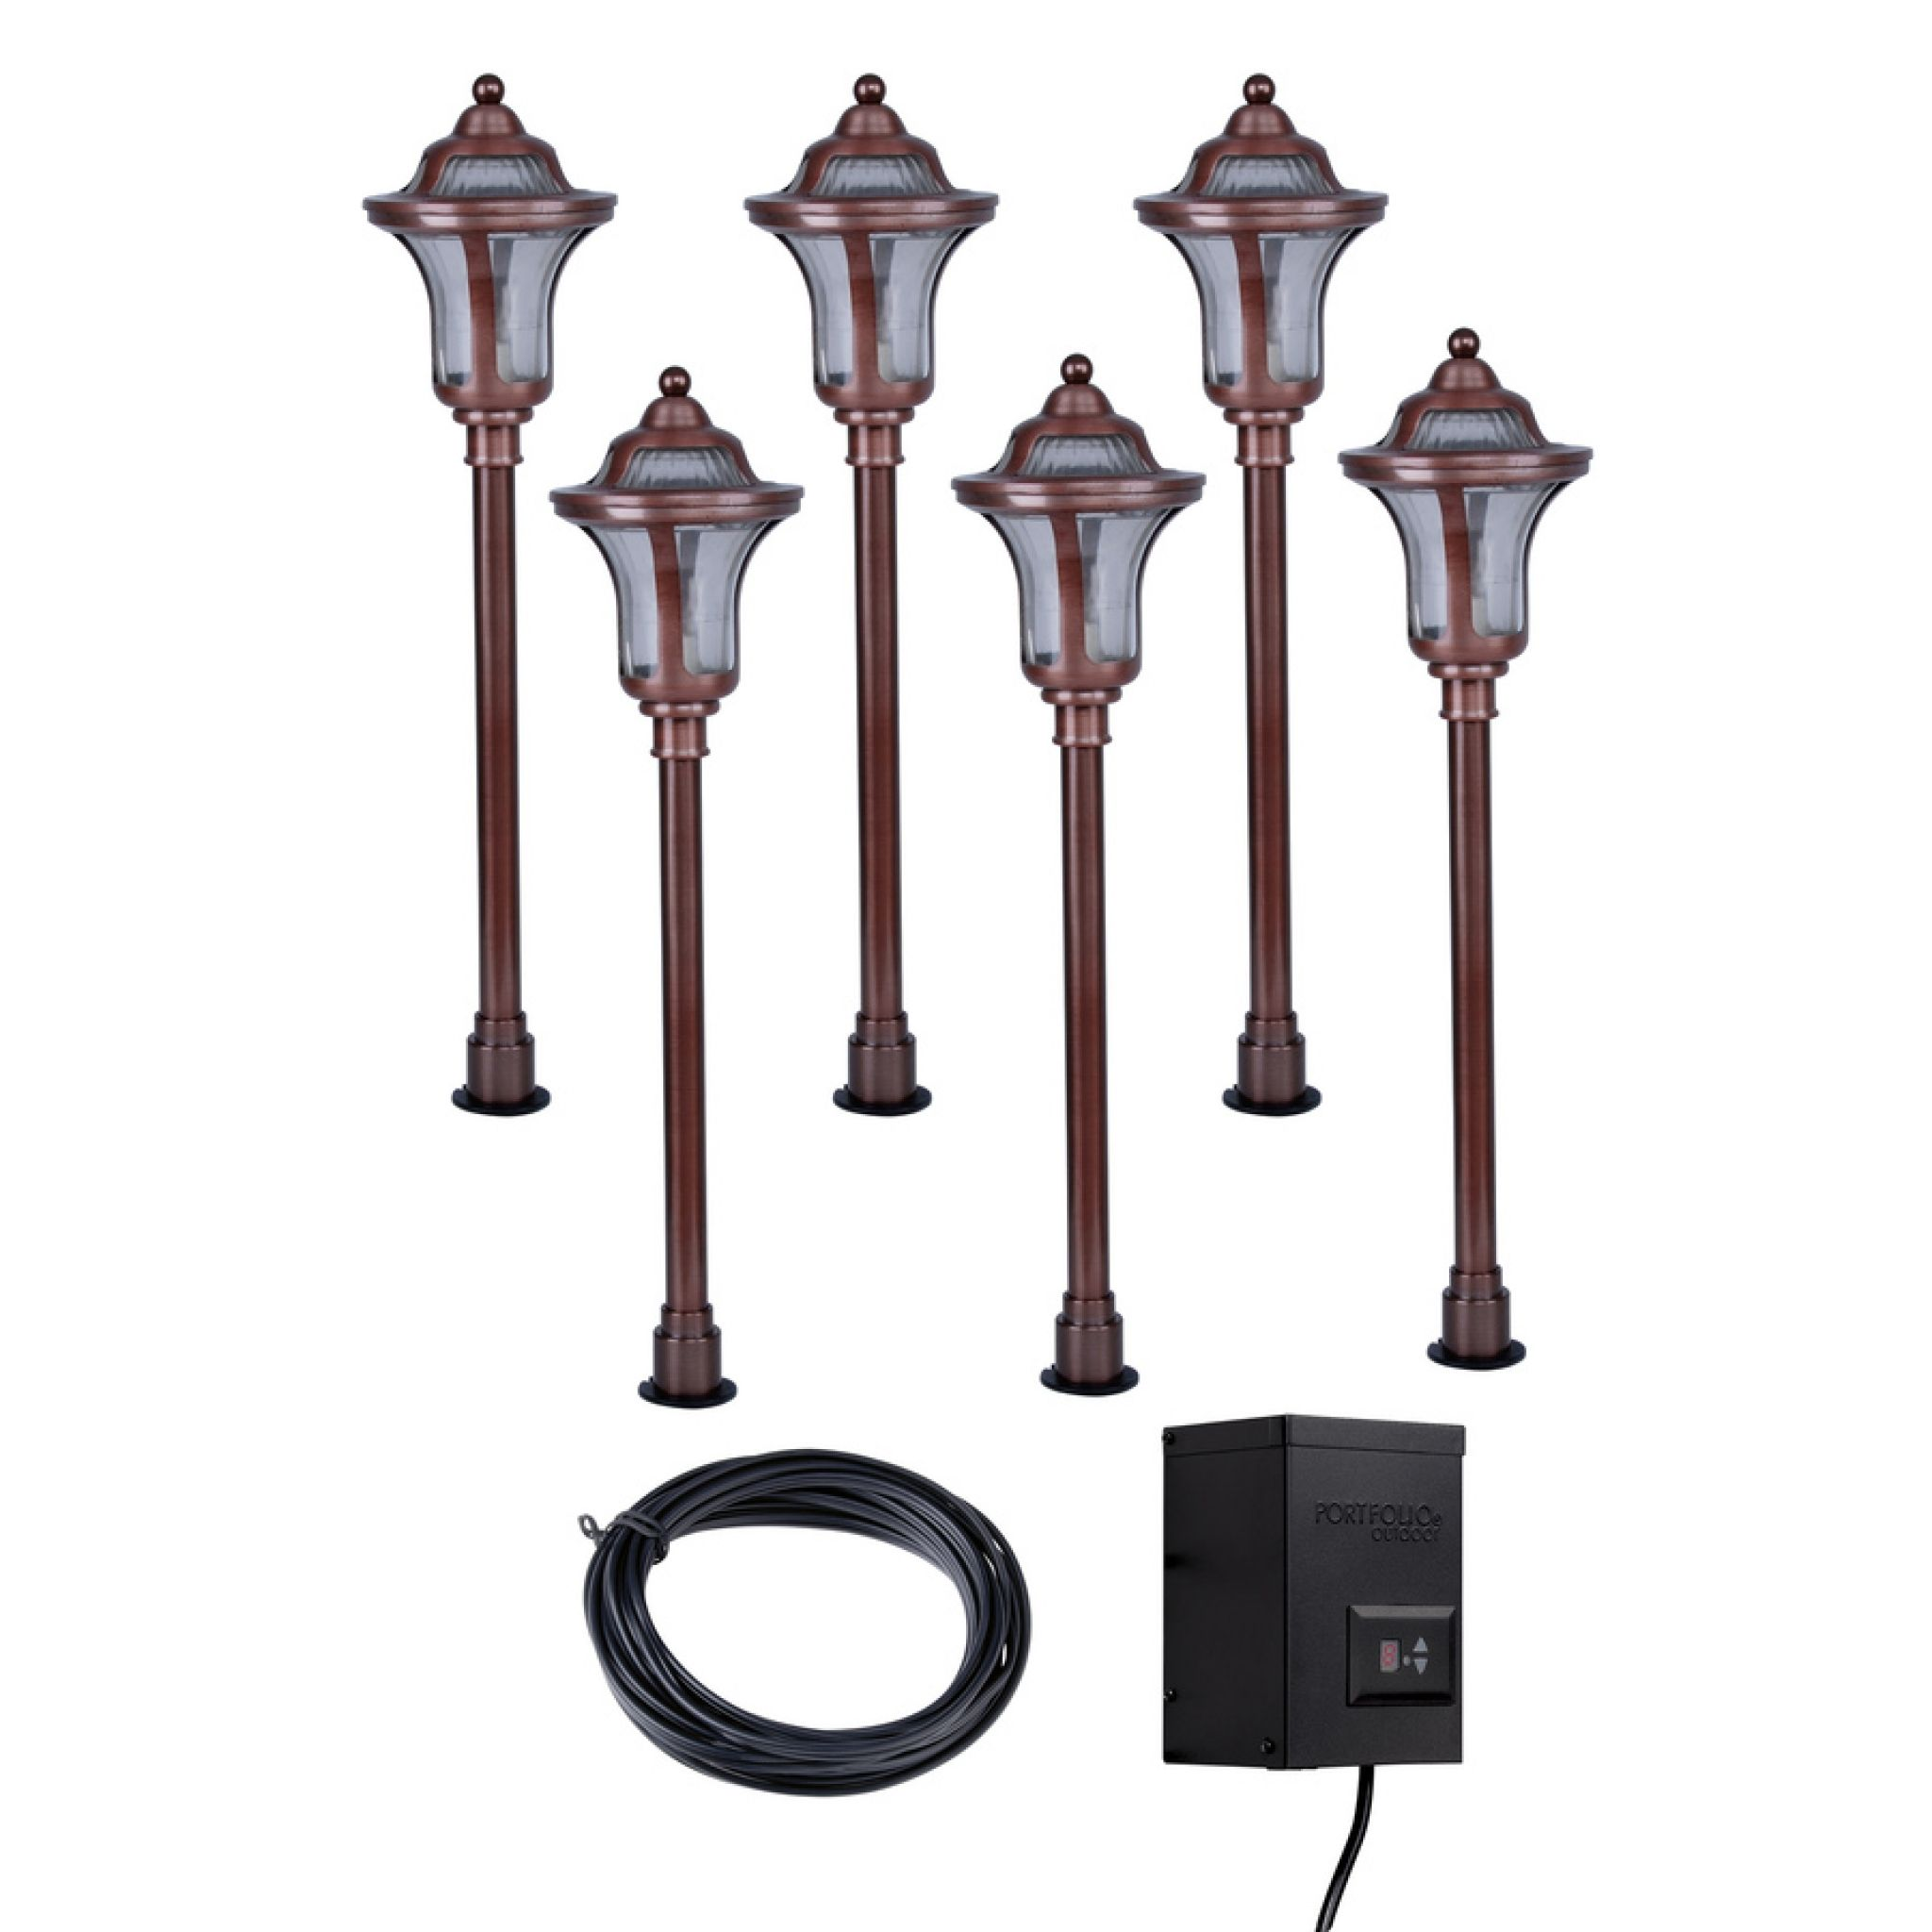 Low Voltage Led Outdoor Lighting Kits Best Paint For Interior Check More At Http Www Low Voltage Outdoor Lighting Outdoor Lighting Kit Led Outdoor Lighting